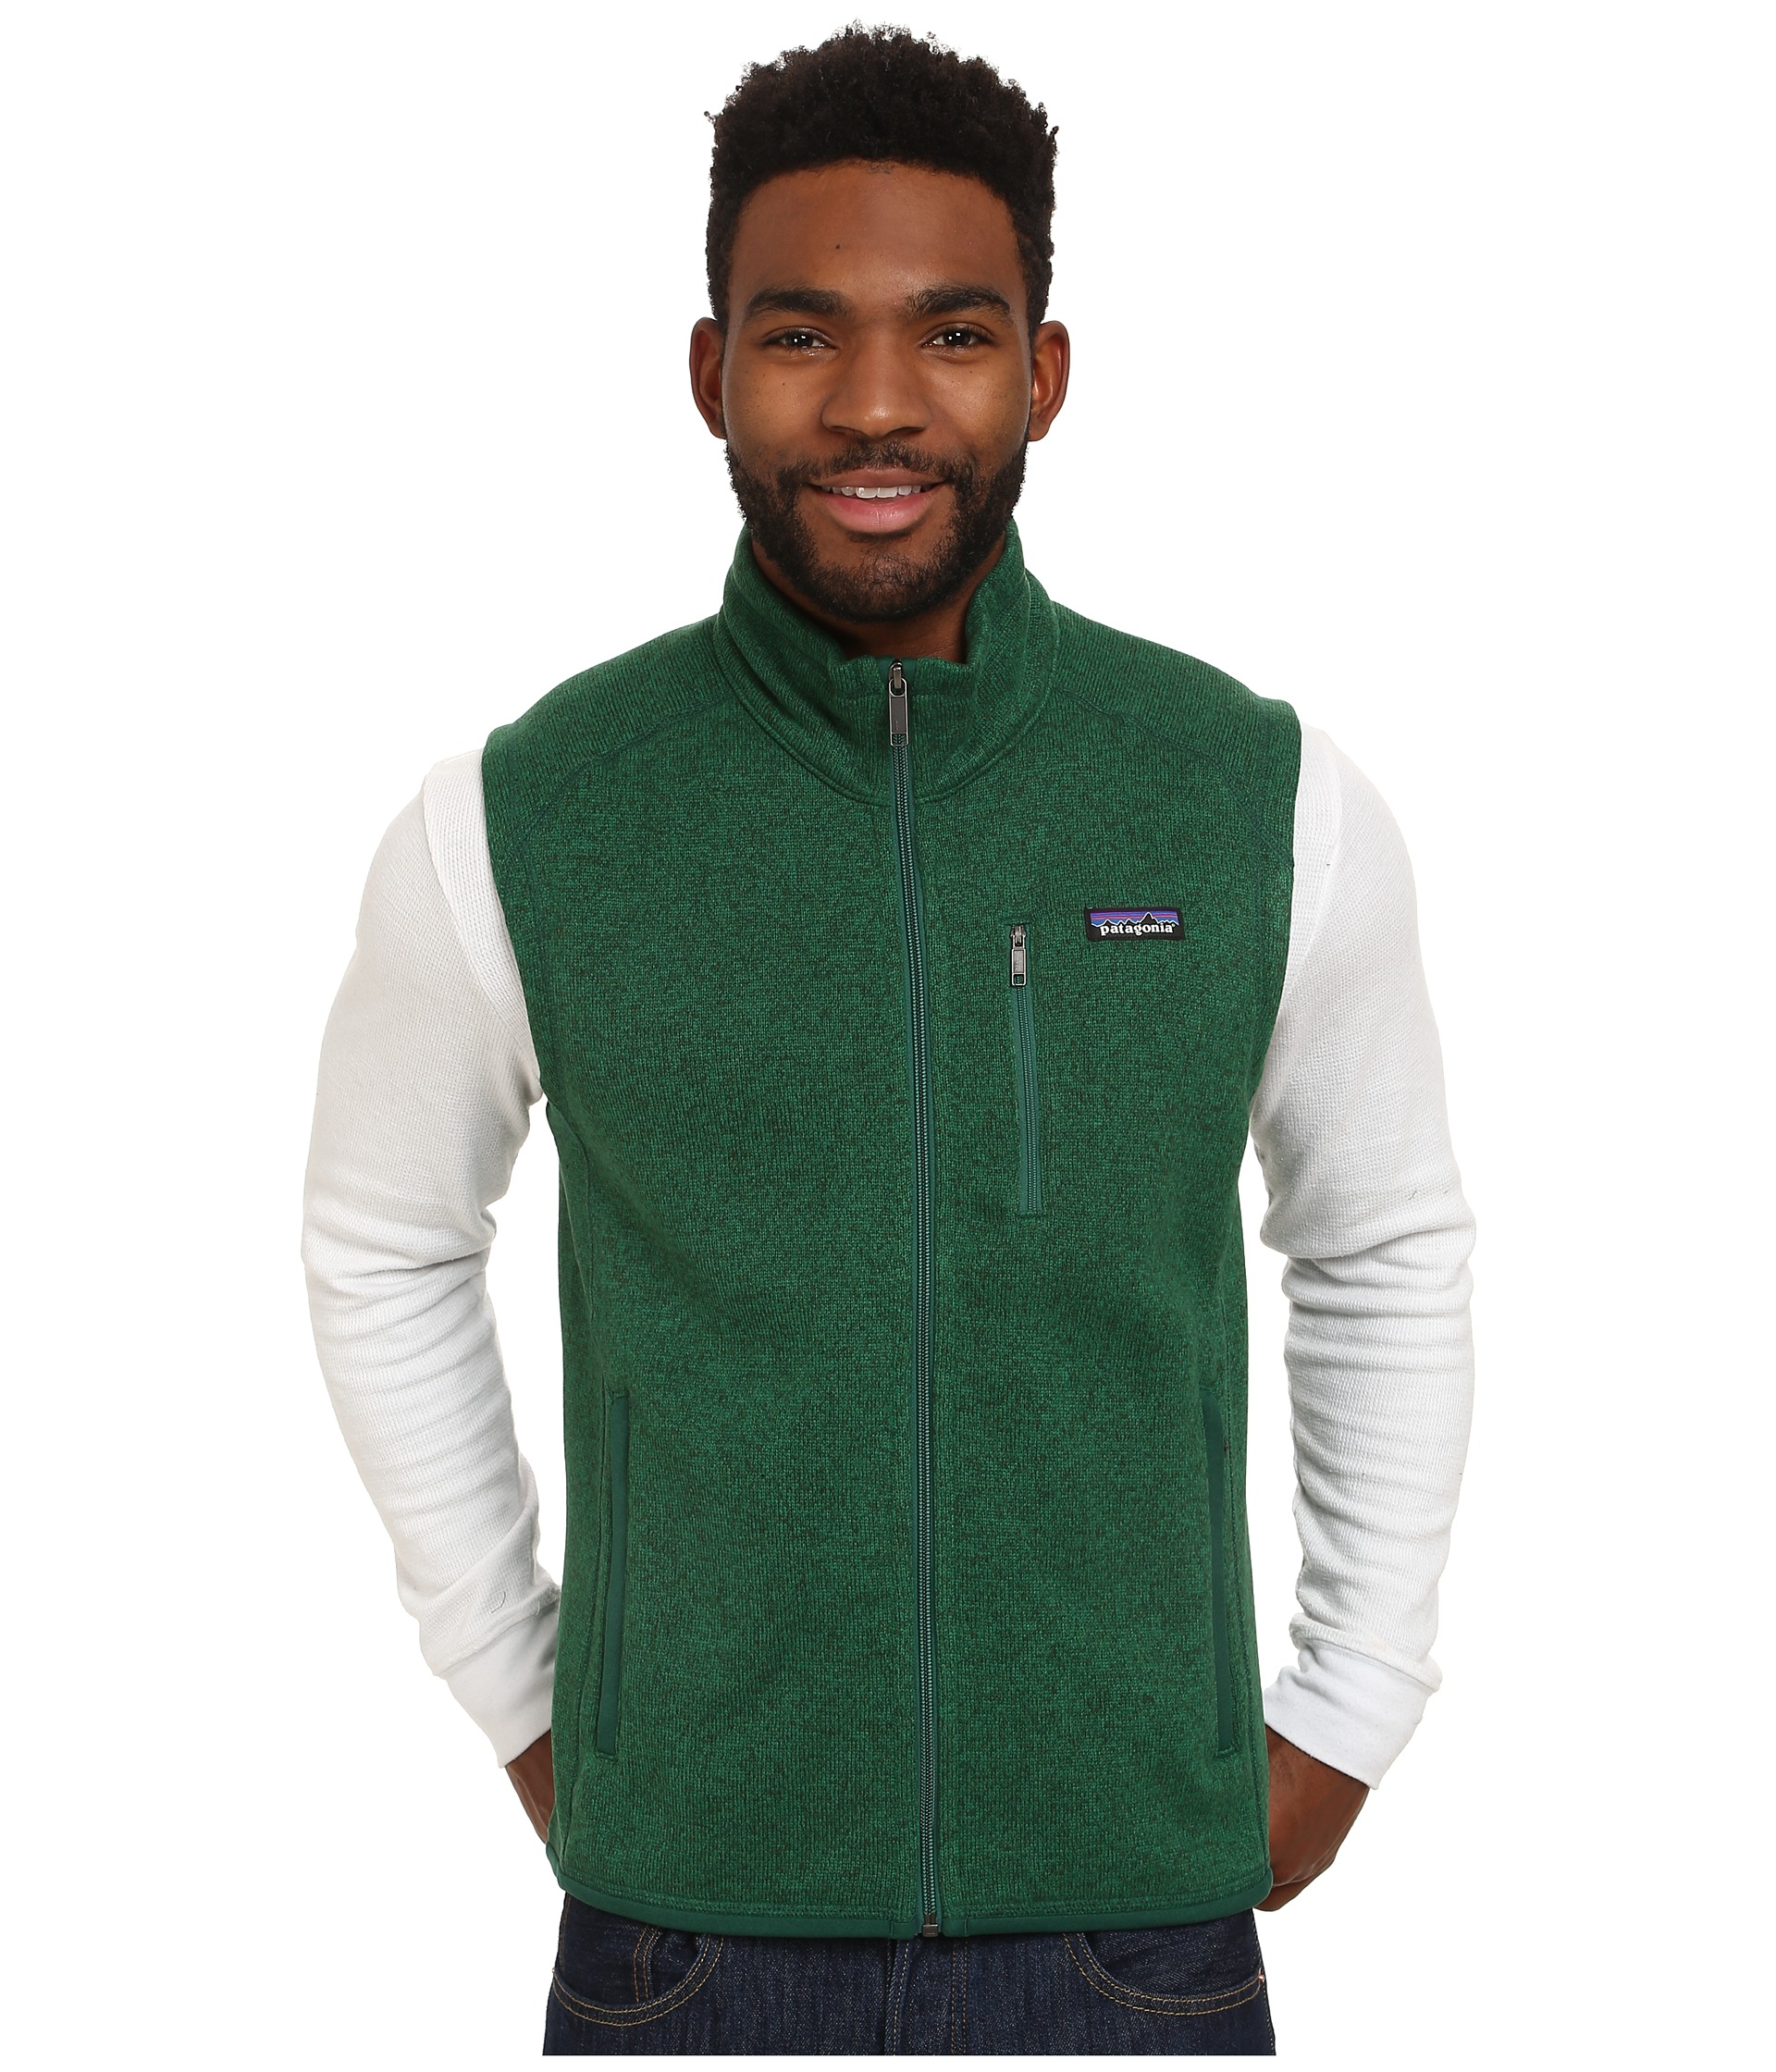 Zappos Better Sweater Vest 39